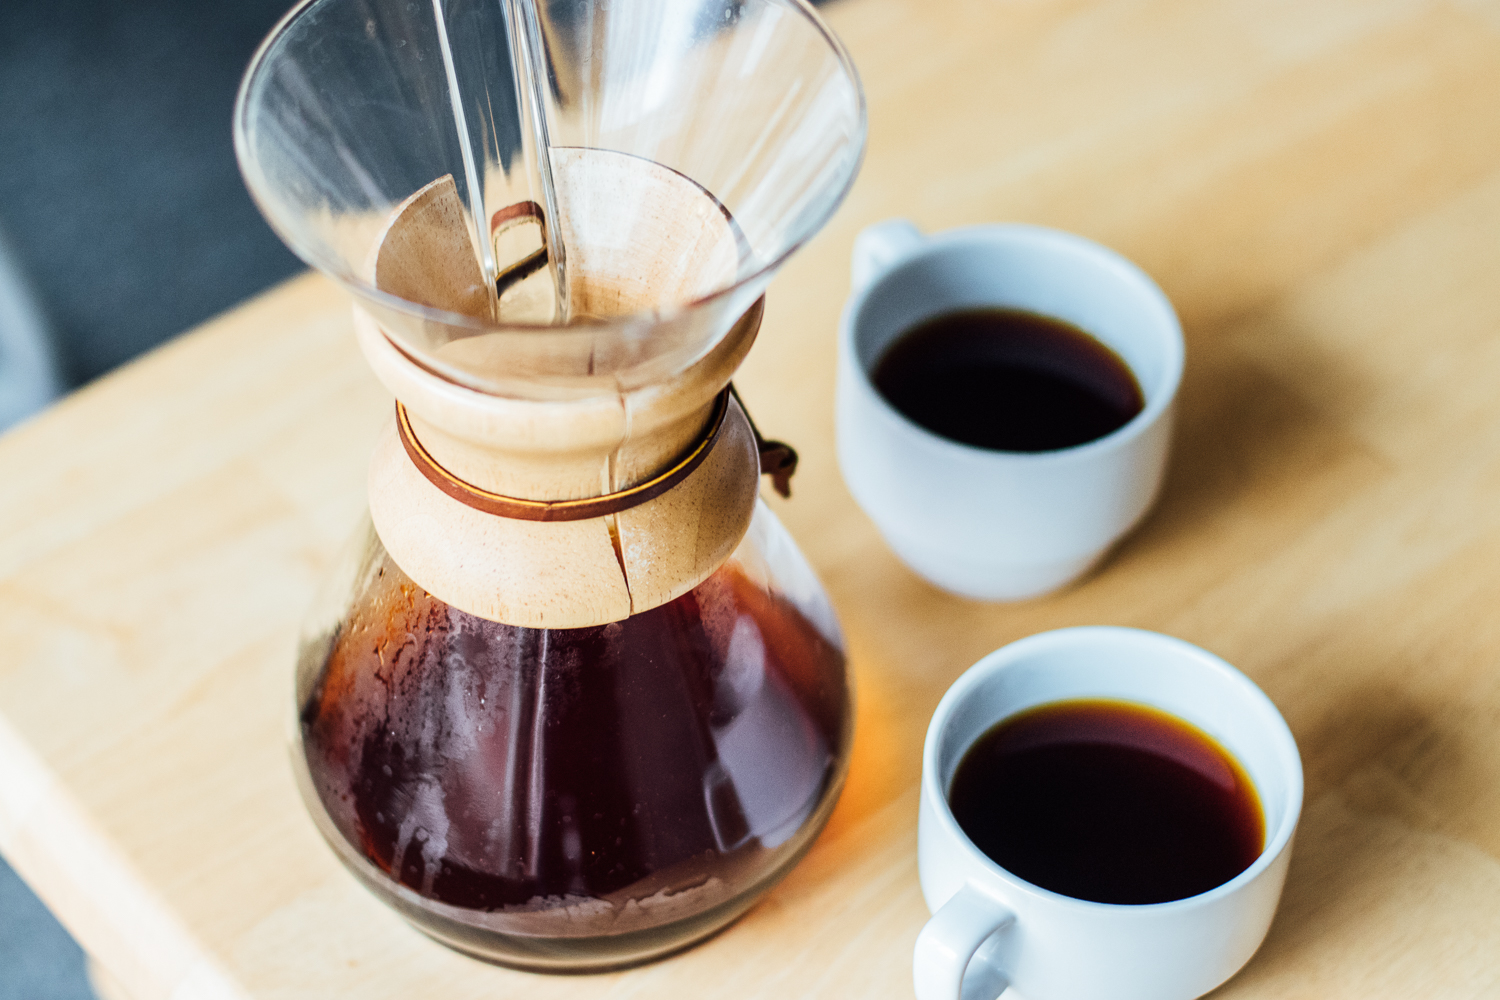 A closeup of the wooden neck Chemex with coffee inside it, alongside two white mugs full of coffee.